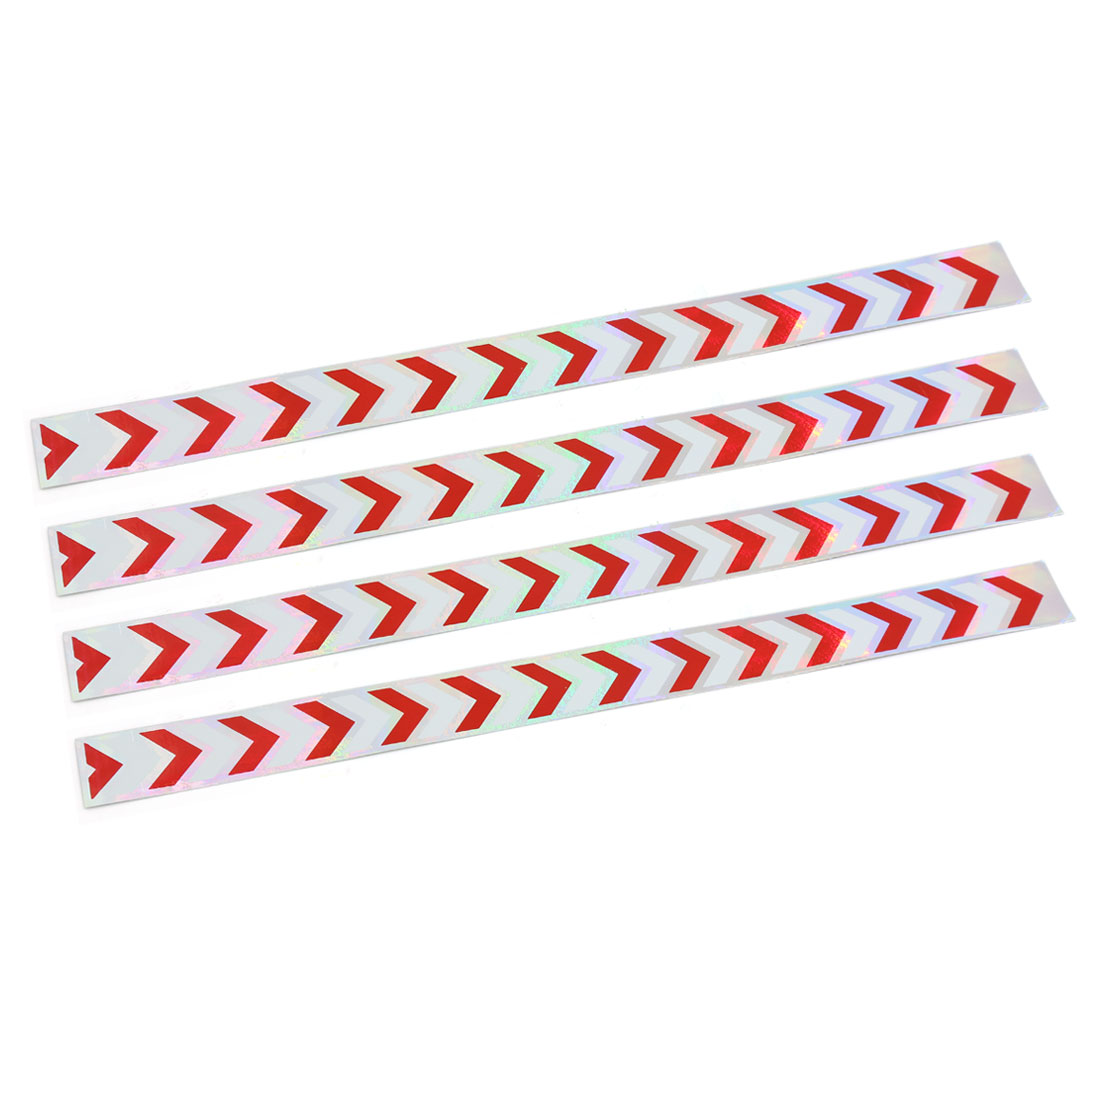 4pcs Arrow Pattern Reflective Self Adhesive Warning Tape Sticker Decal for Car